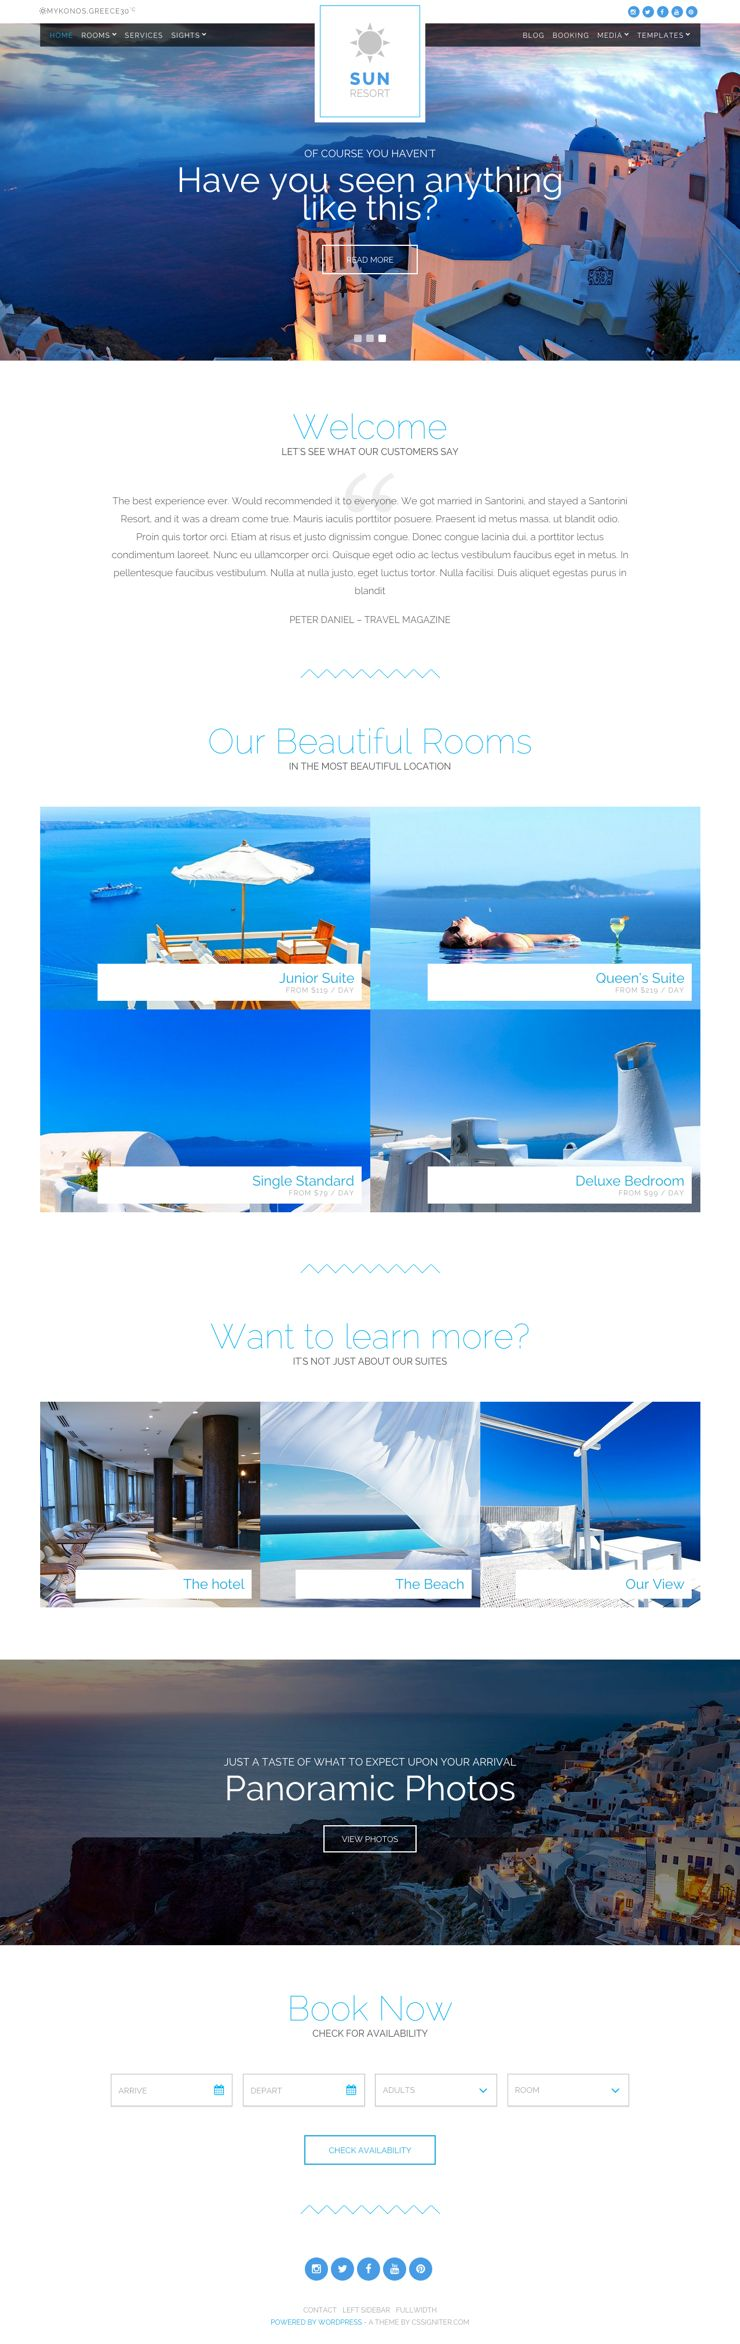 Sun Resort WordPress Hotel Booking Theme